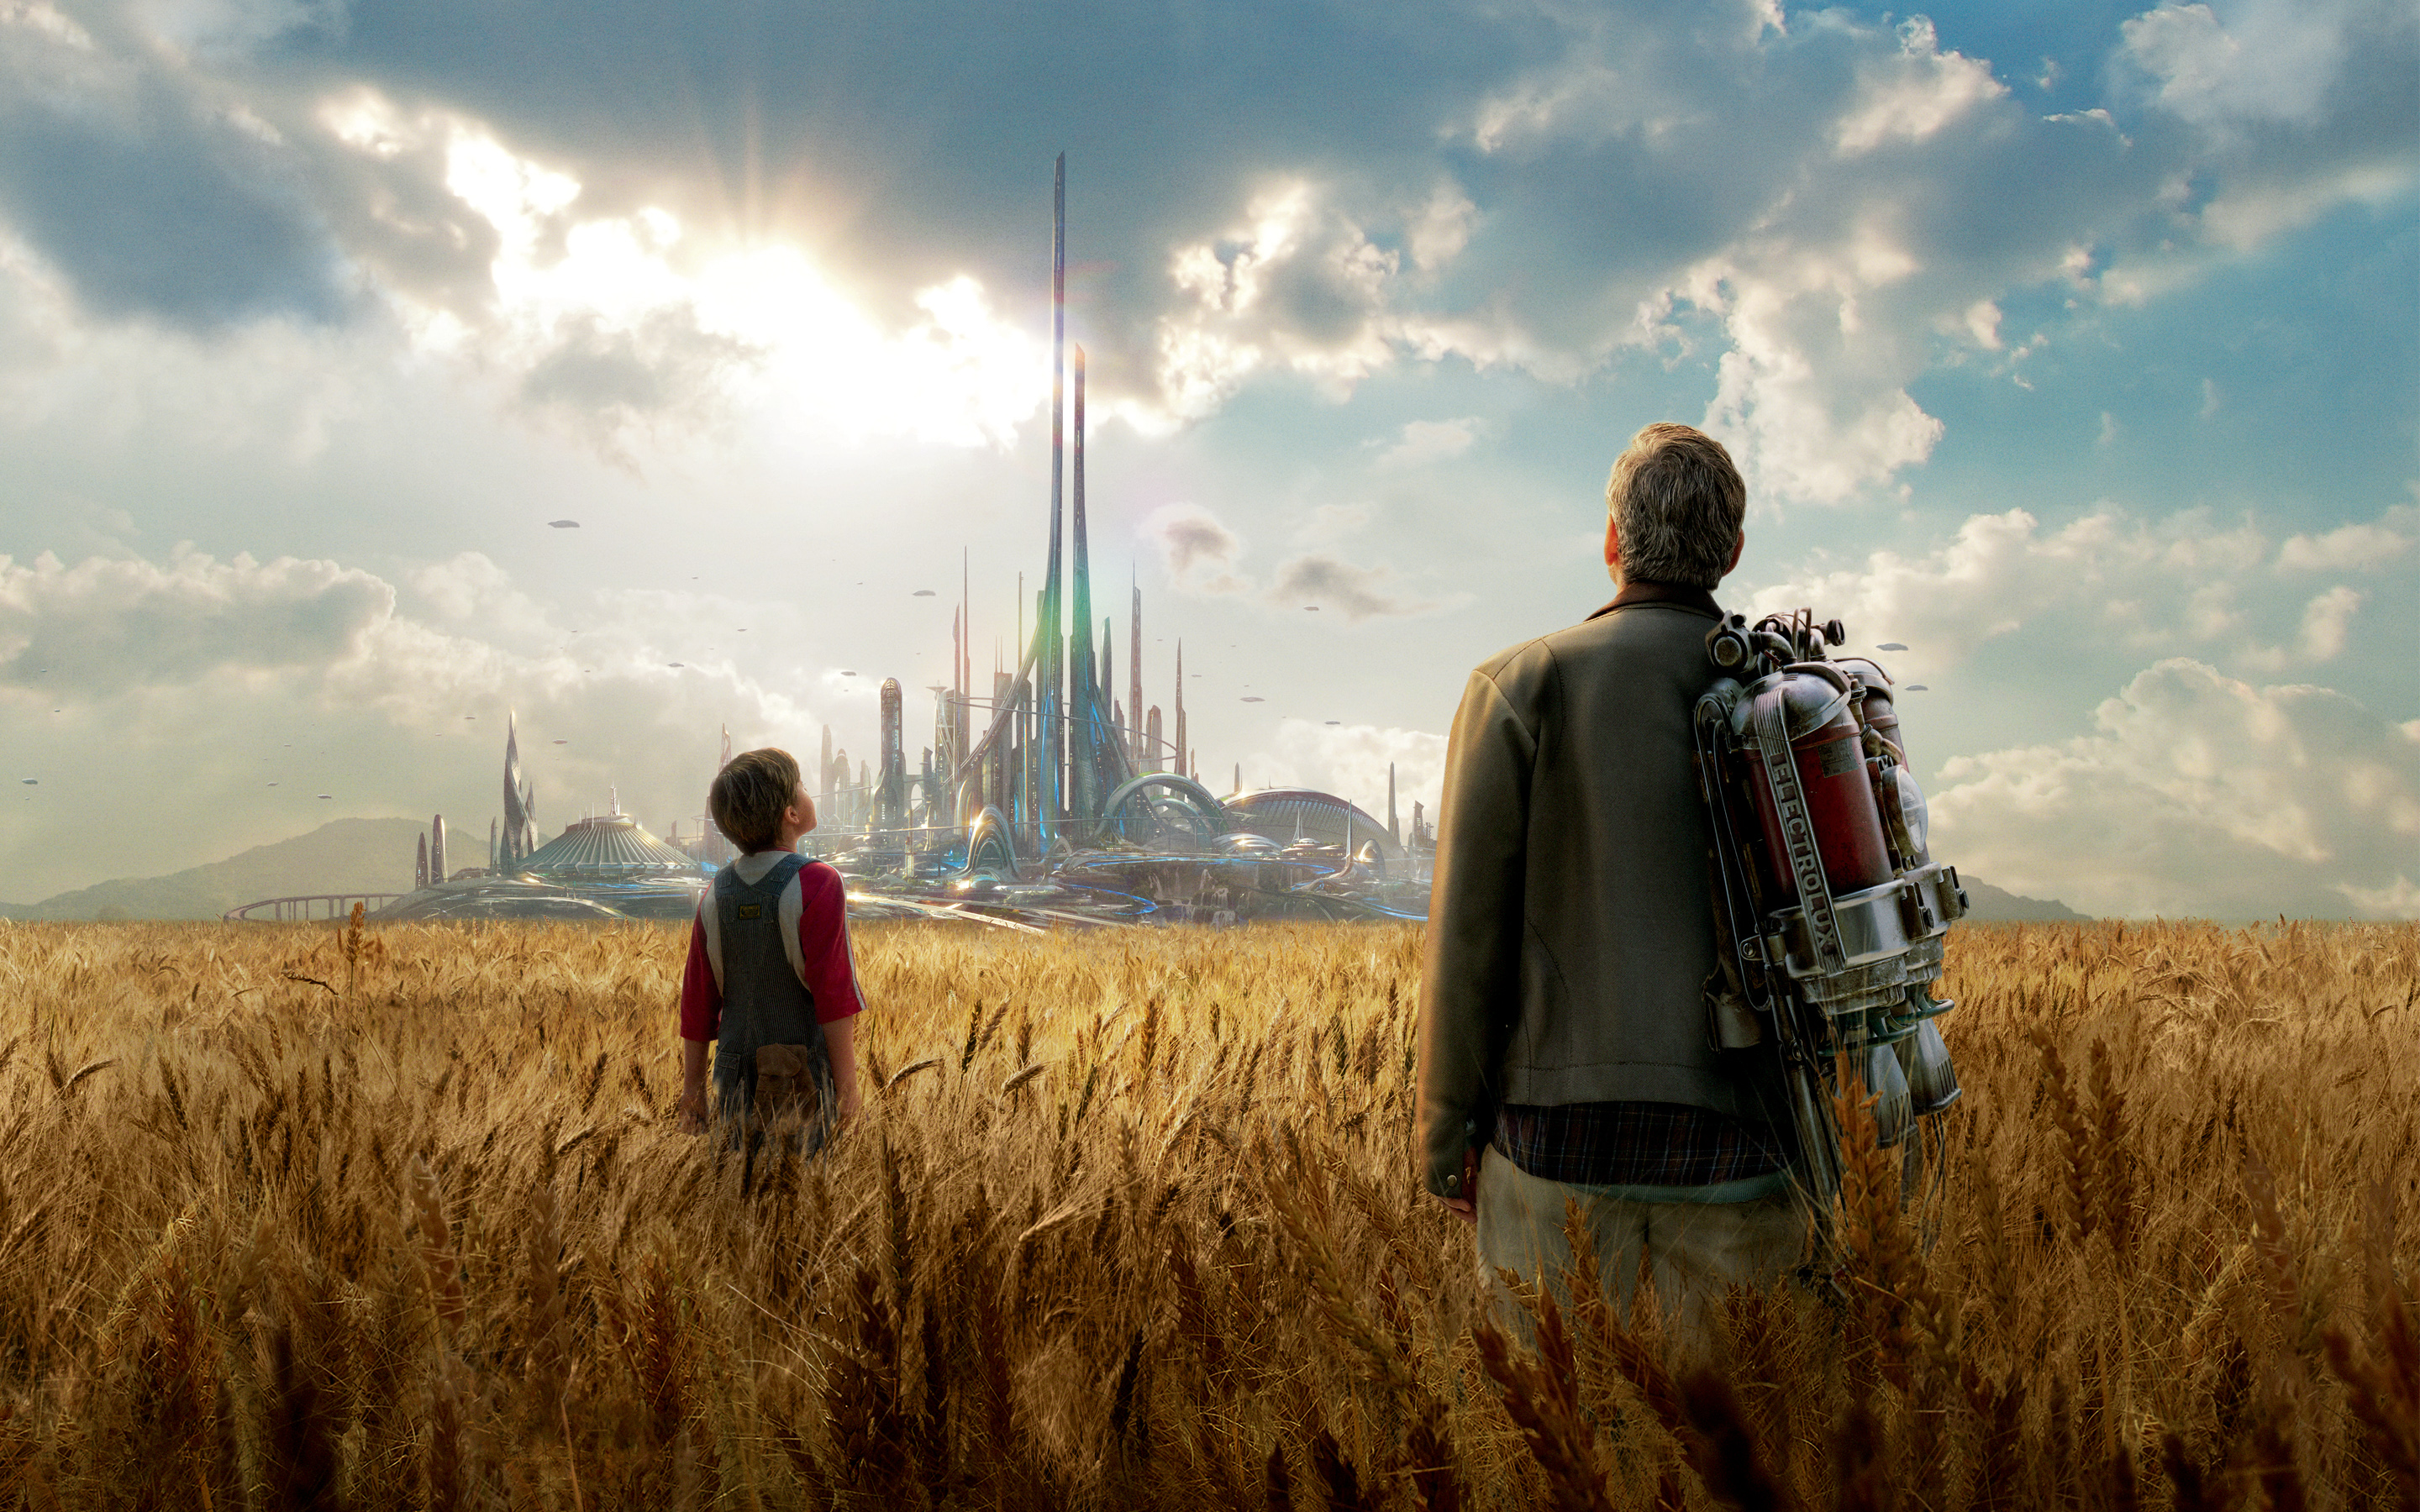 new tomorrowland movie hd desktop wallpapers 2015 - all hd wallpapers